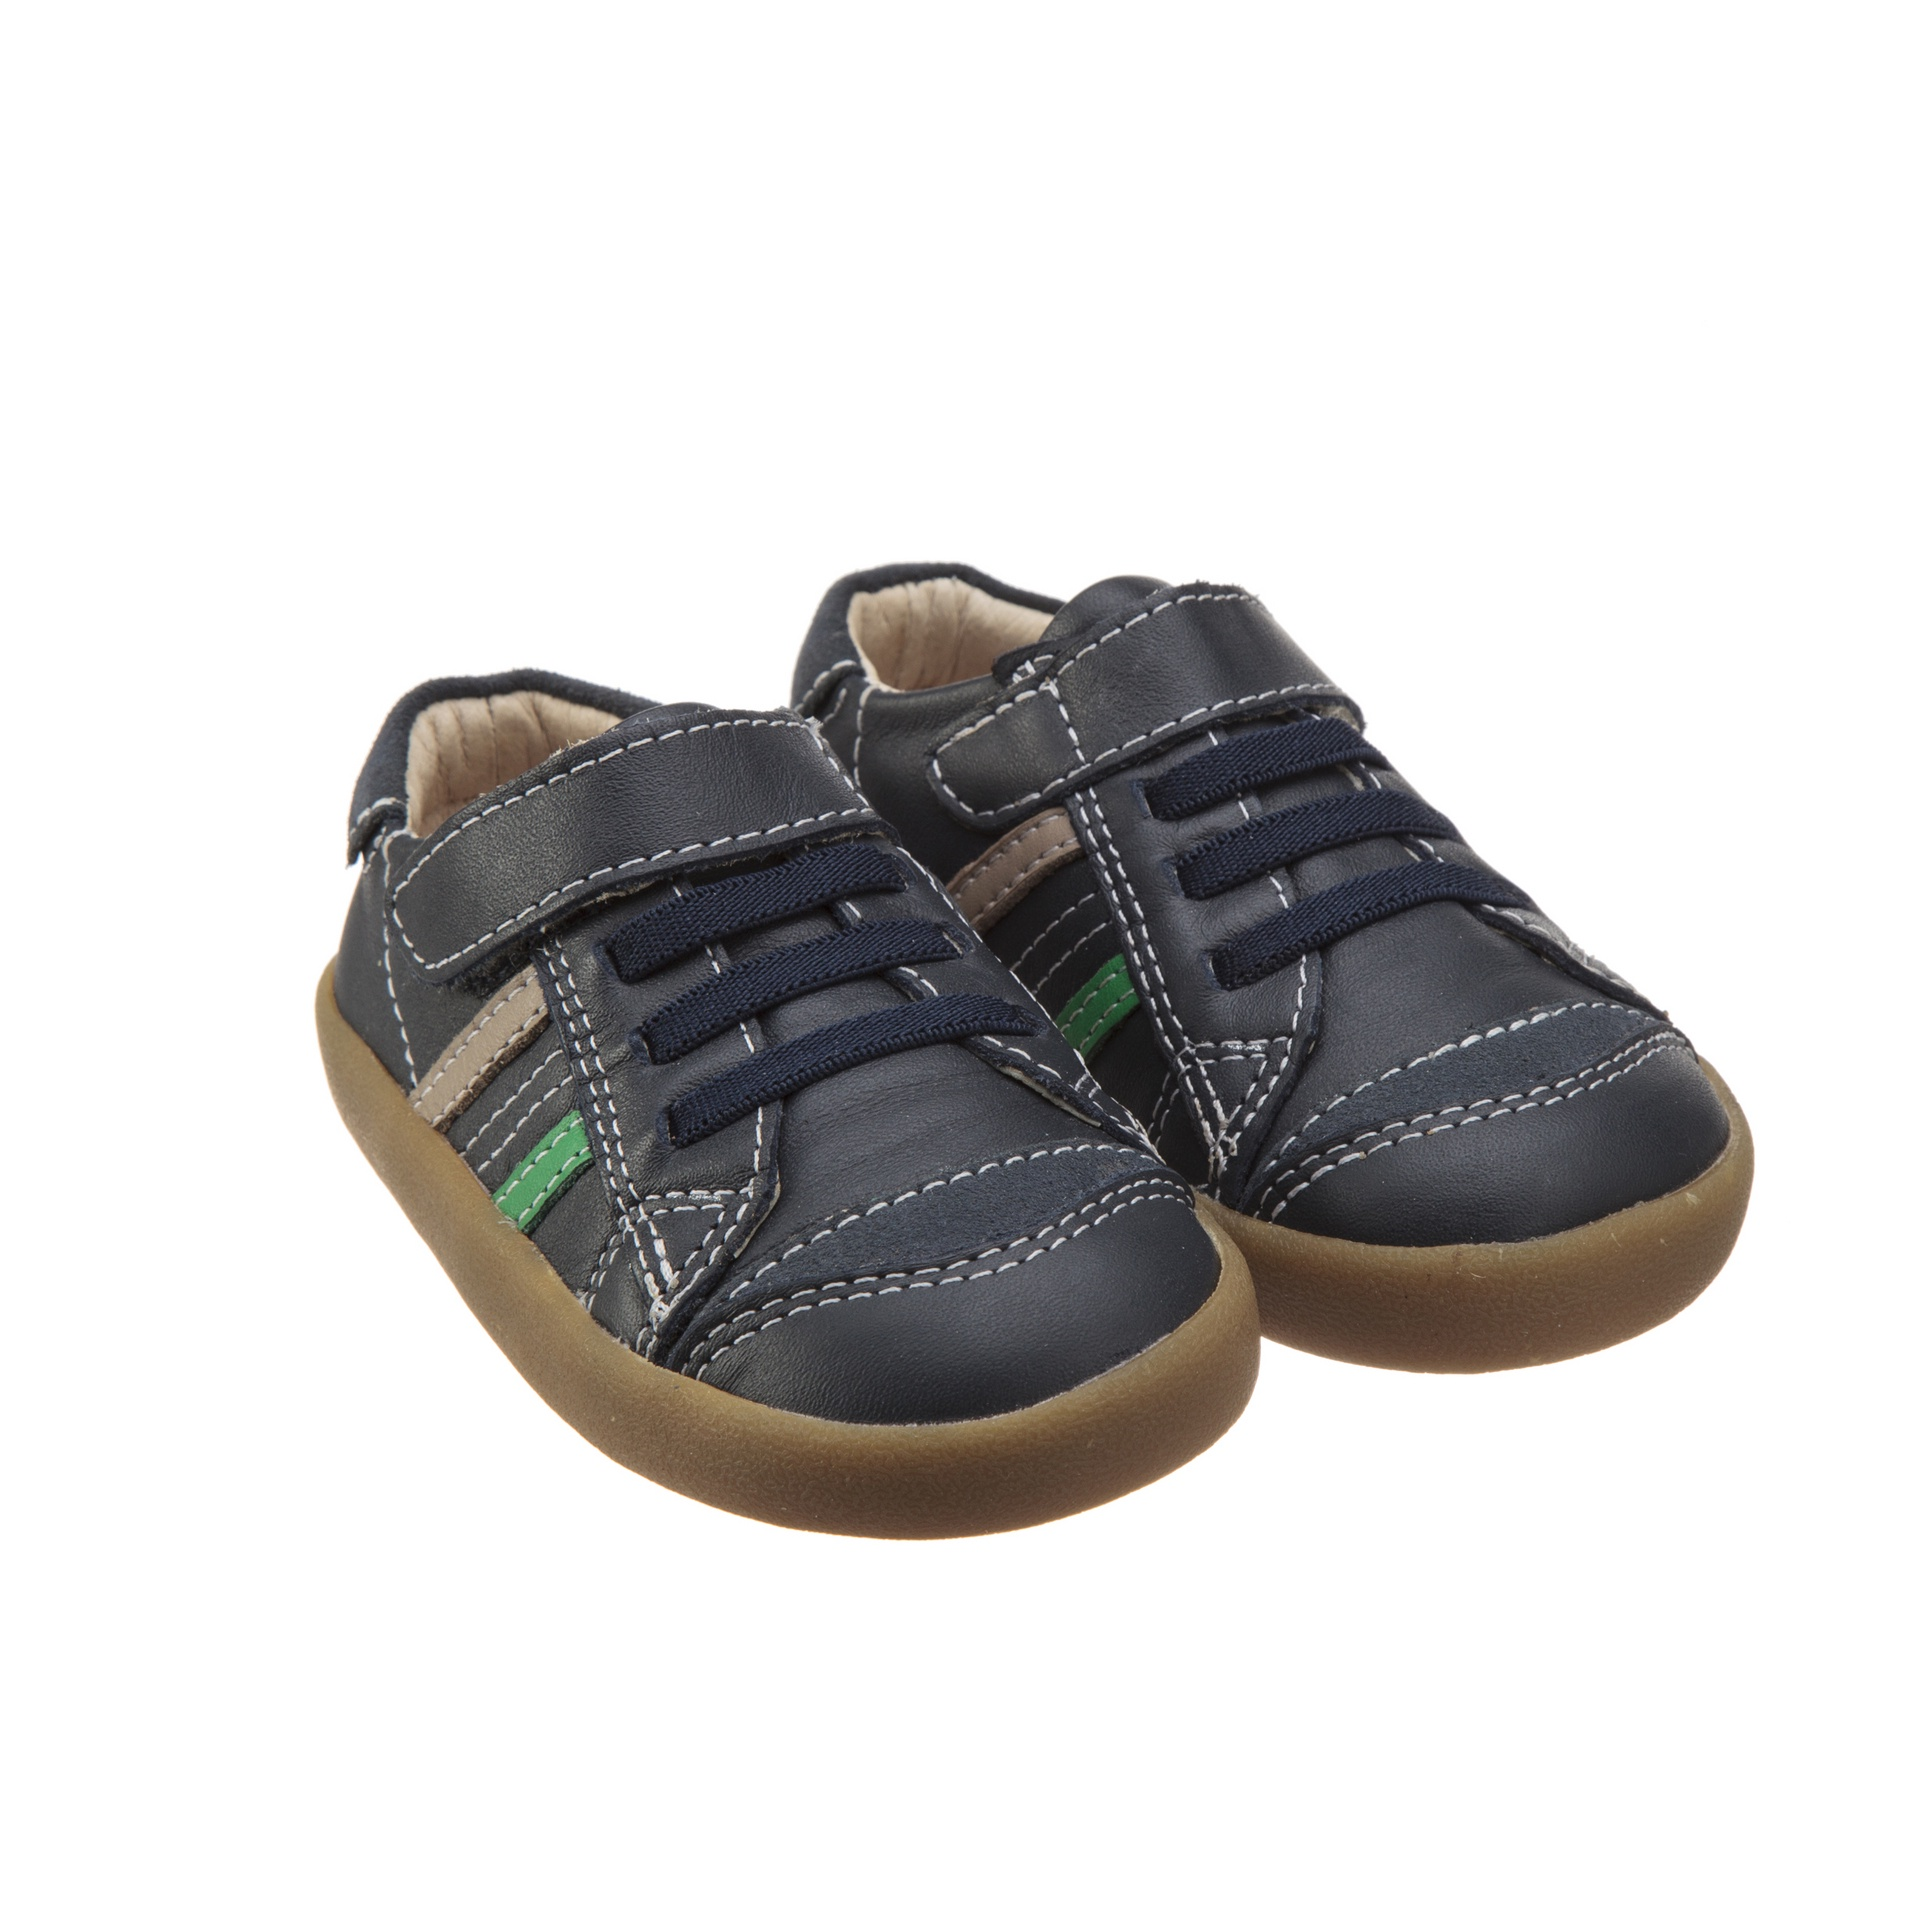 Old Soles Denzle Up Navy Green Taupe